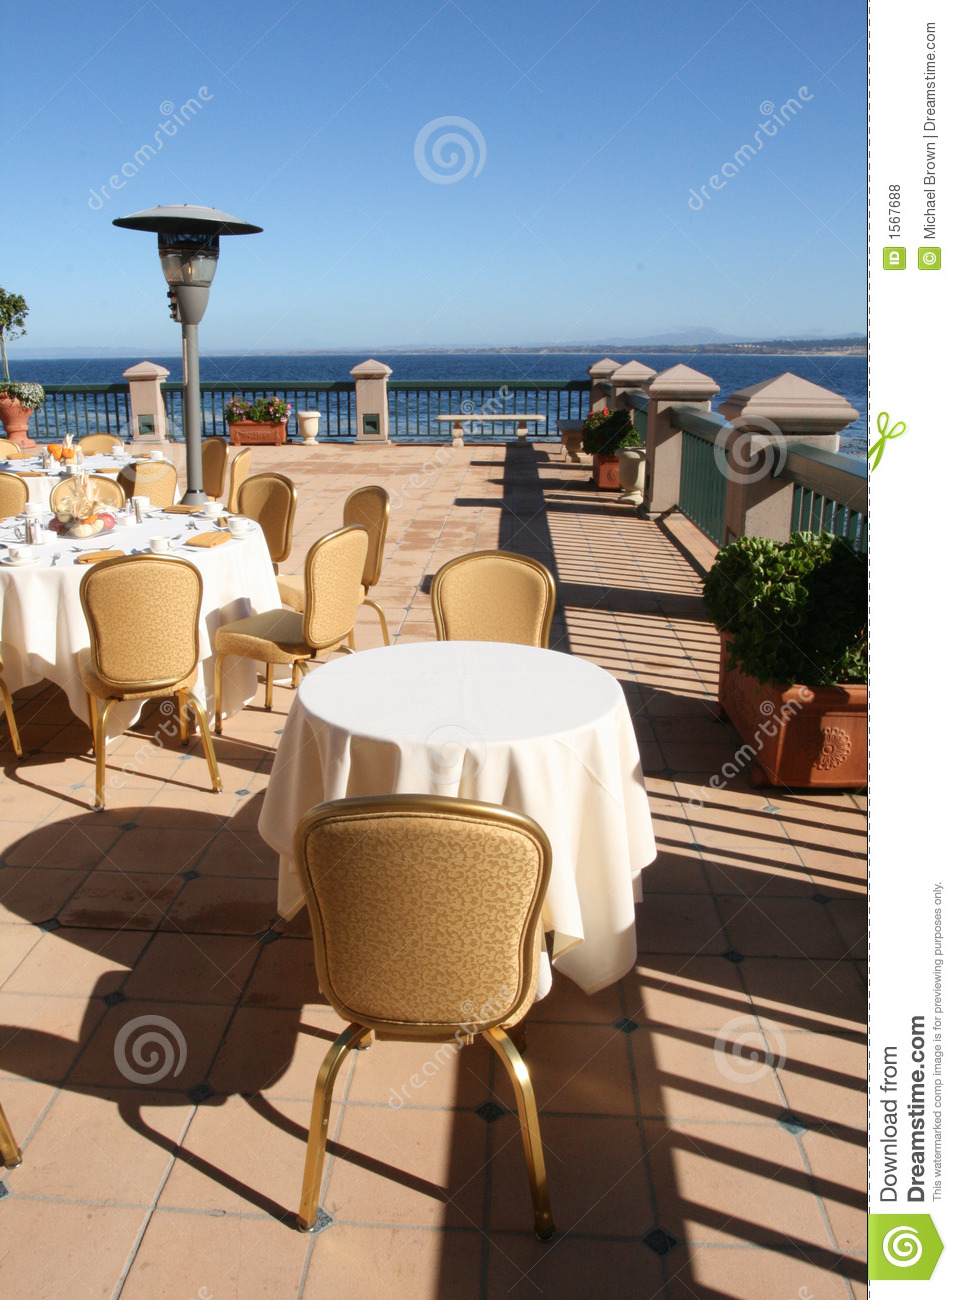 Oceanside Cafe Stock Photo Image Of Tablecloths Restaurant 1567688